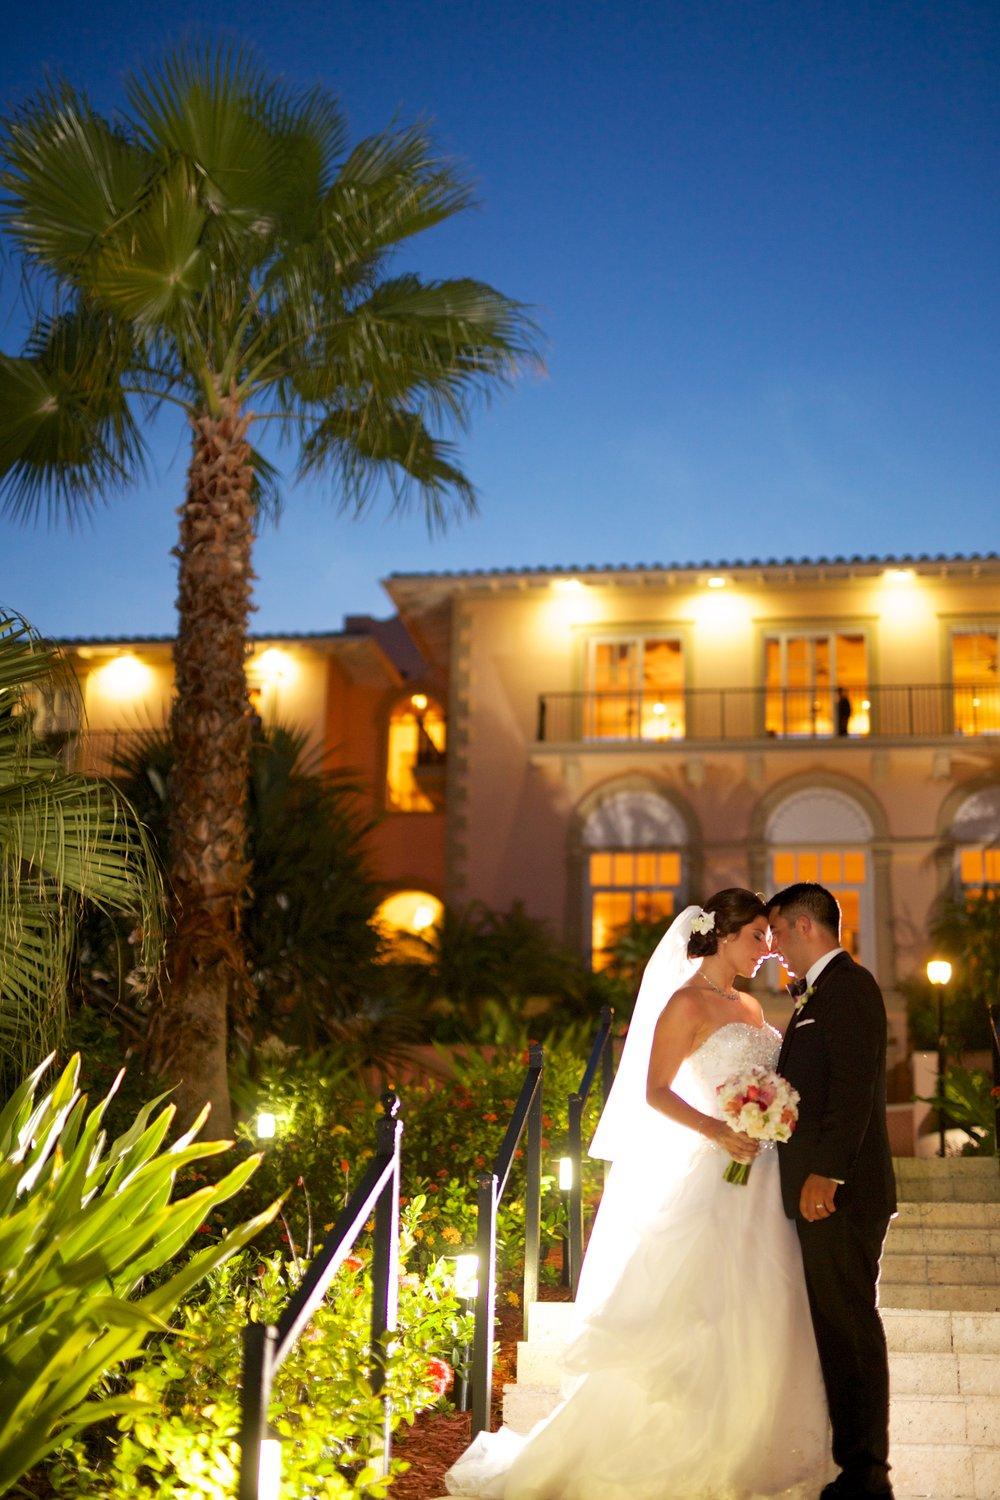 Le Cape Weddings - The Ritz Carlton Saint Thomas VA Wedding - Hesam and Mahsa  Day 3  2847.jpg